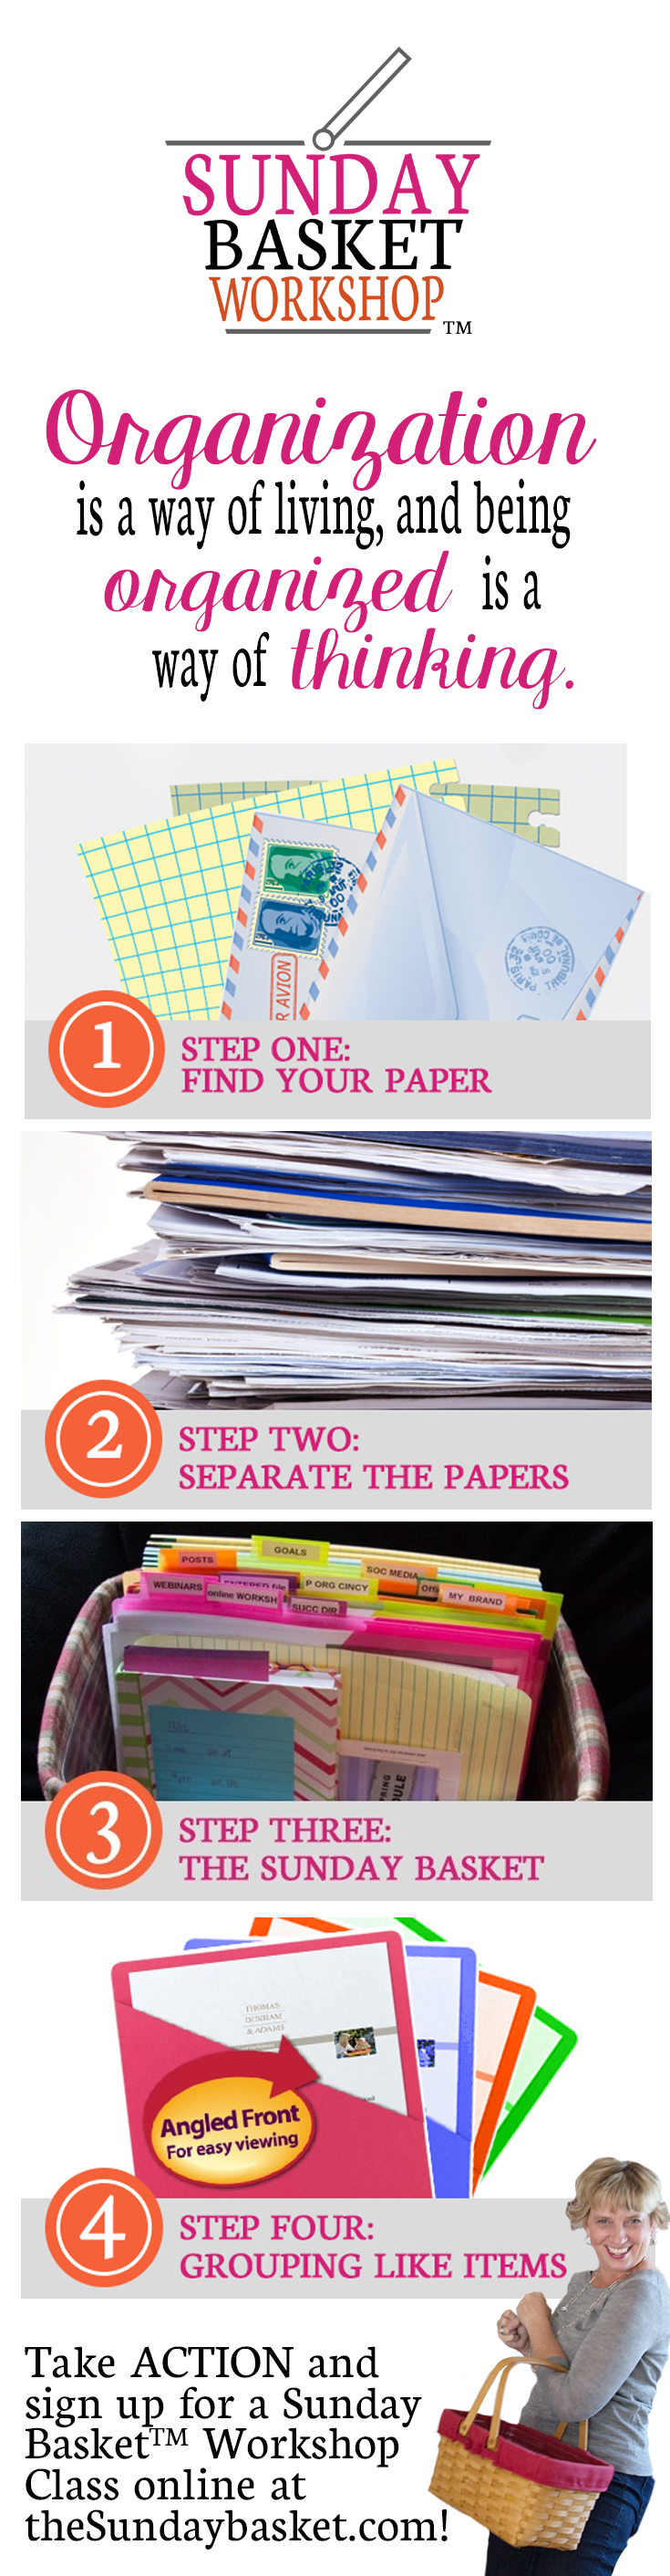 Paper Organization 101 - the Sunday Basket to get your papers organized! at I'm an Organizing Junkie blog